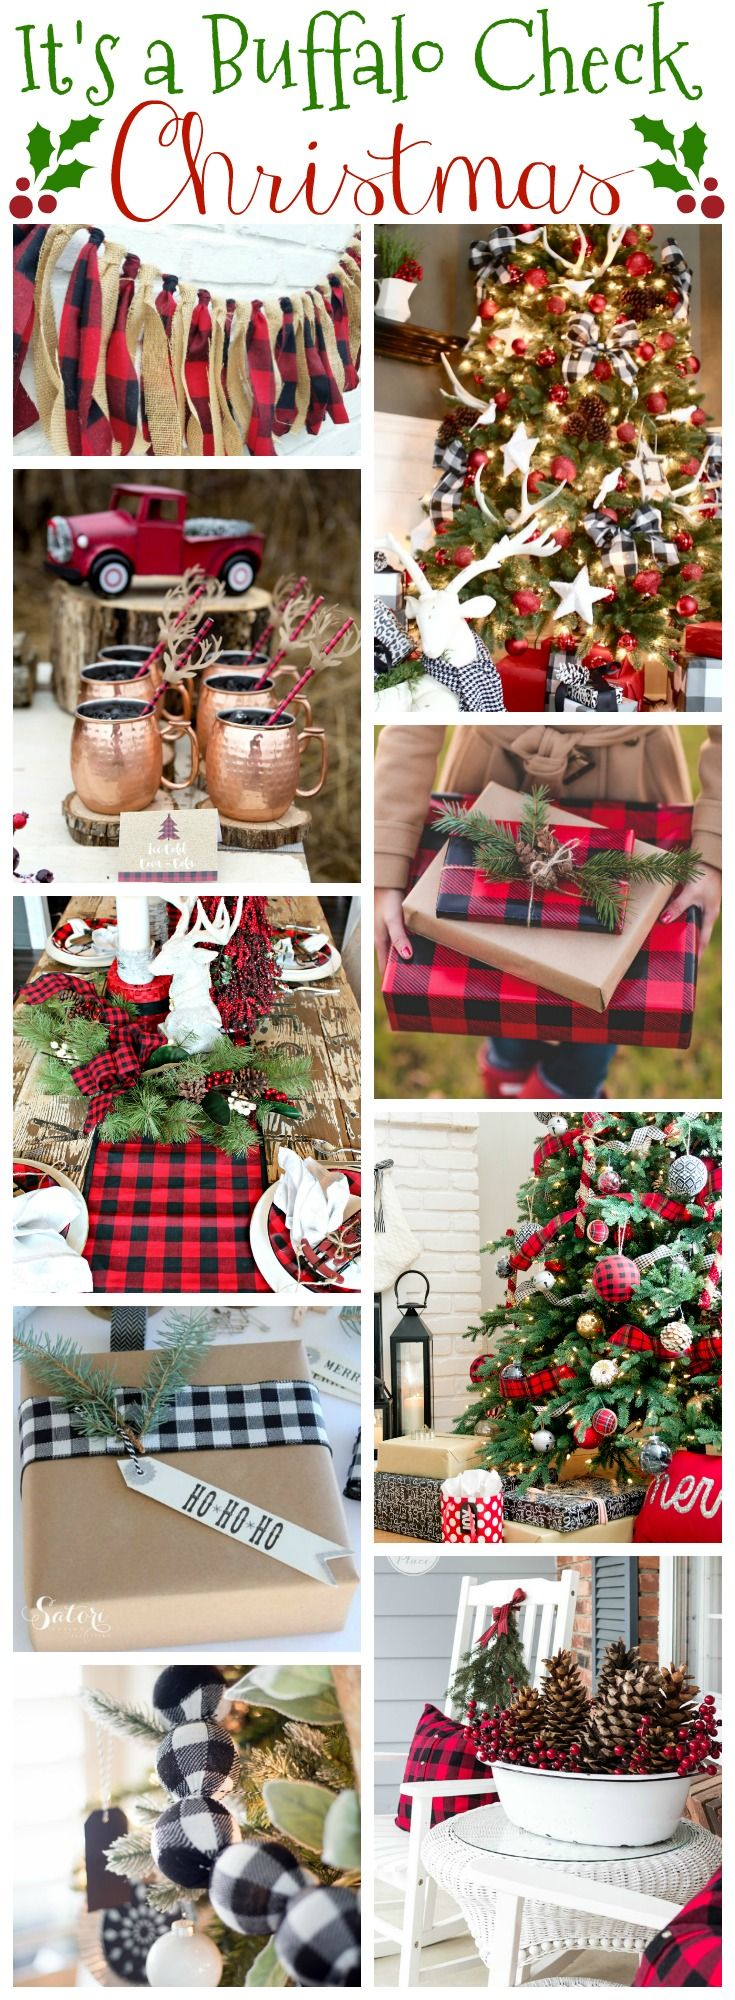 Best 25+ Farmhouse christmas decor ideas on Pinterest | Christmas decor,  Rustic christmas decorations and Country winter decorations